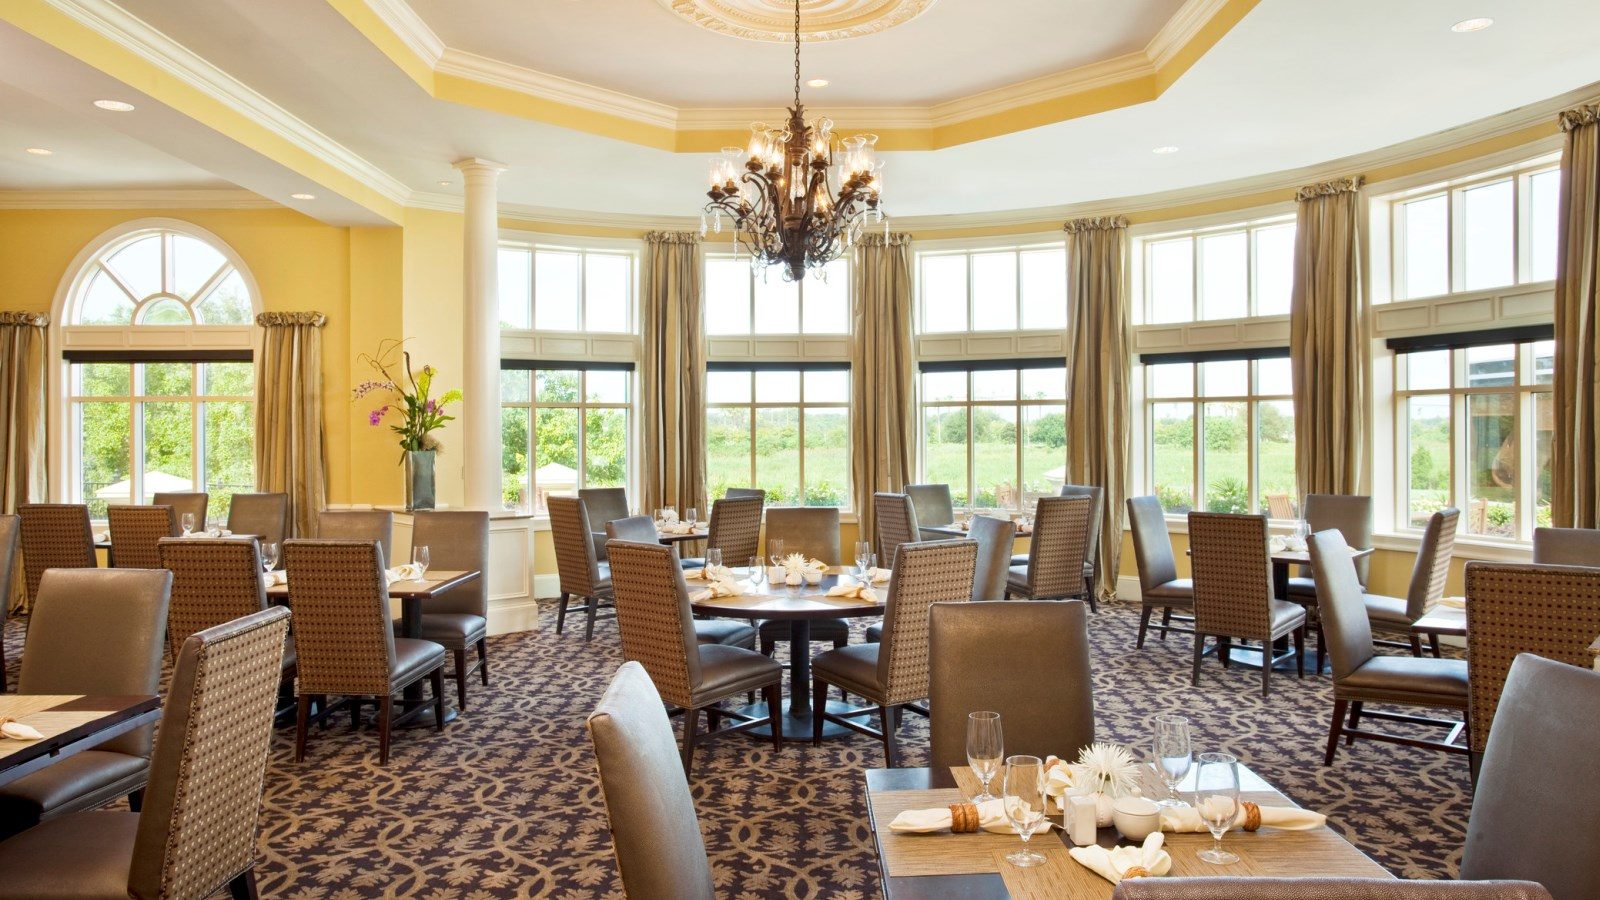 Dining at The Westin Savannah - Champions Bar & Grill